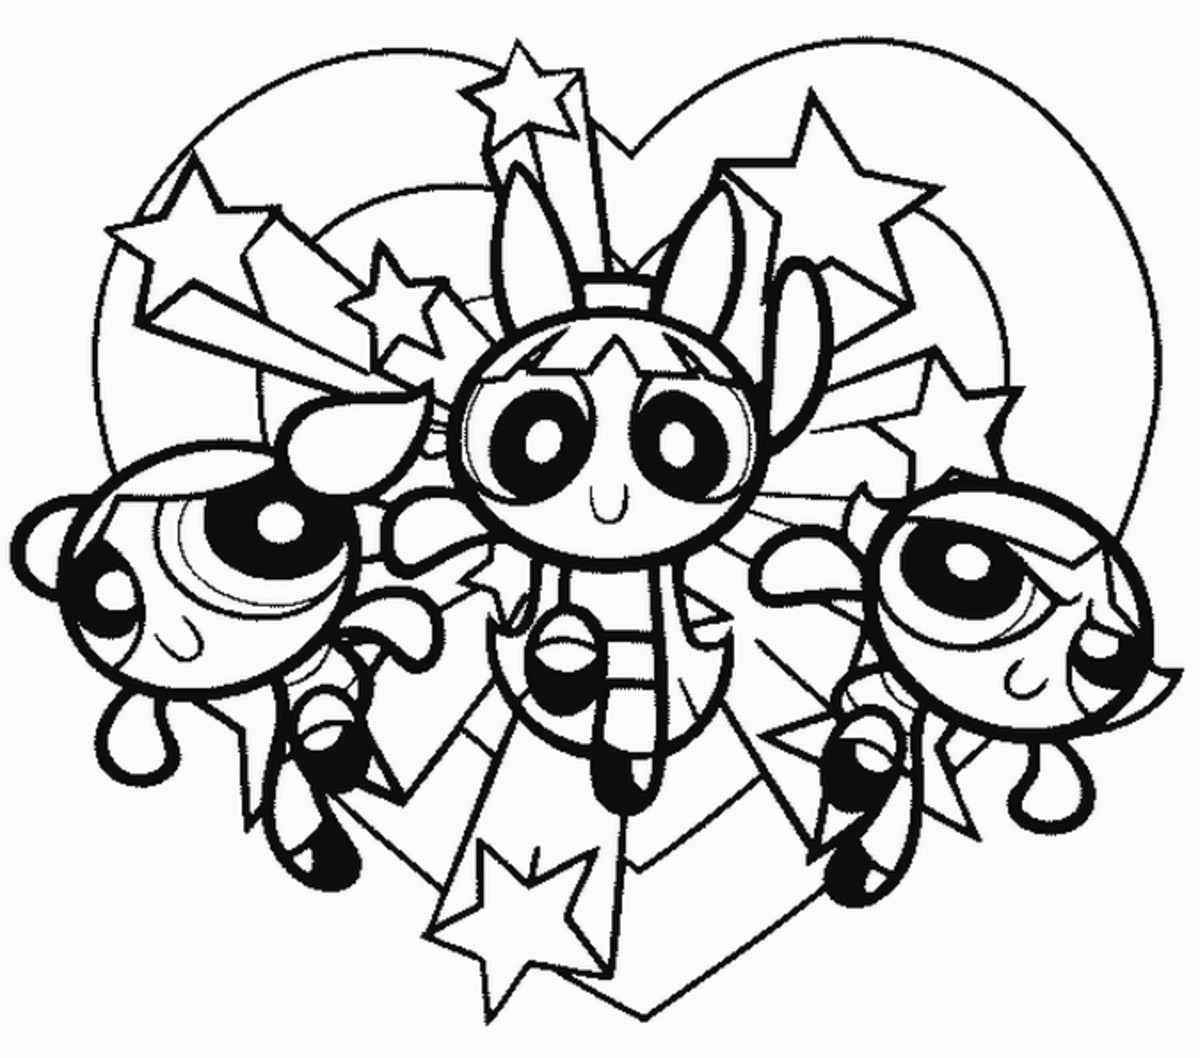 Powerpuff Girls Kids Coloring Pages Free Colouring Pictures to Print - on the move